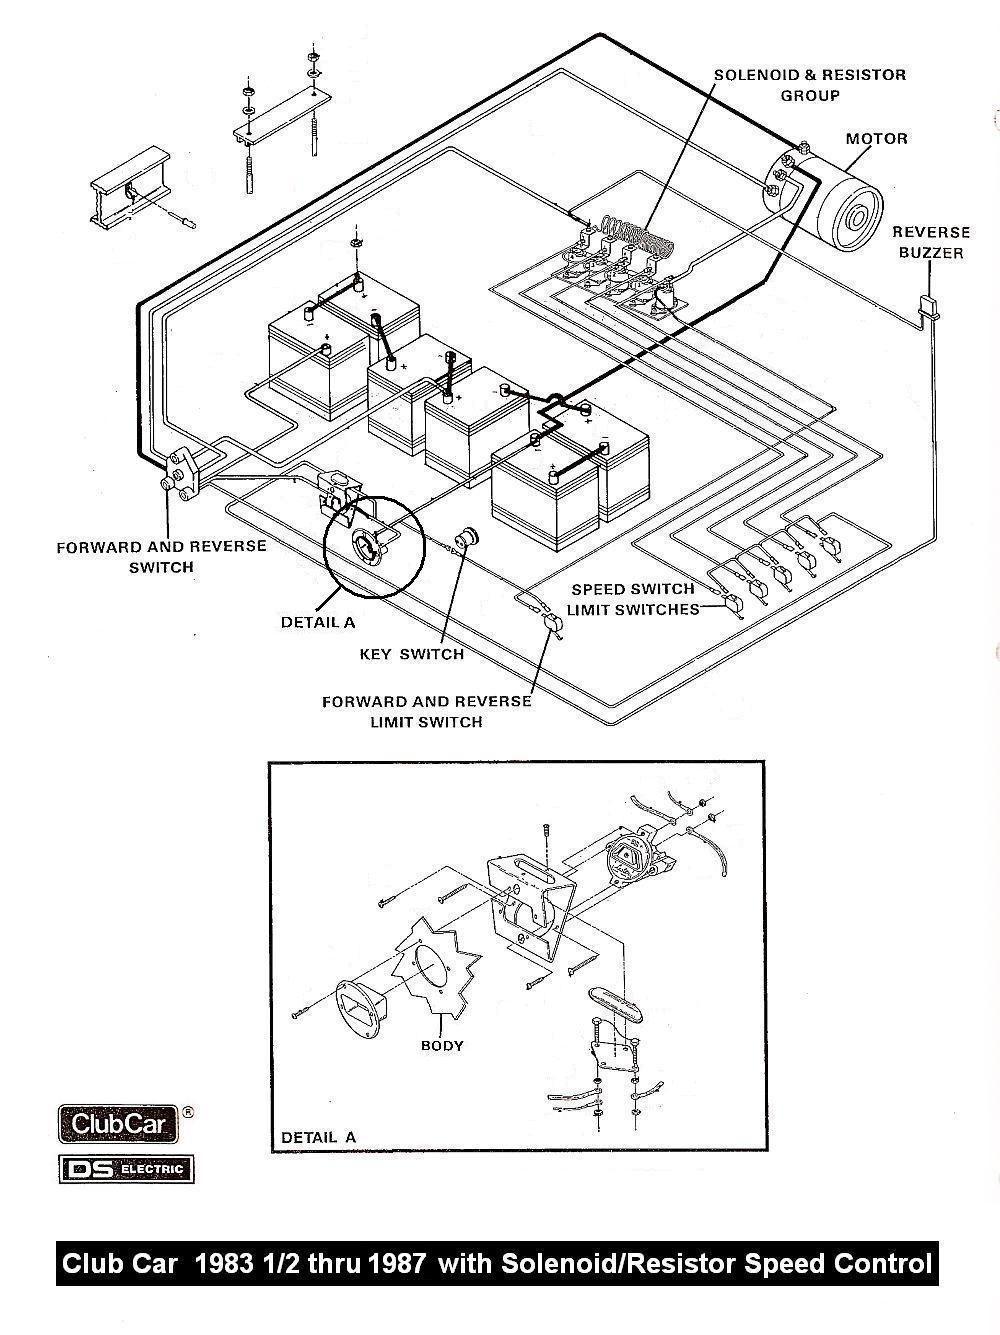 0e8d045370be7682b159825224221faa vintagegolfcartparts com *freezer & crock pot* pinterest gas club car golf cart wiring diagram at bayanpartner.co